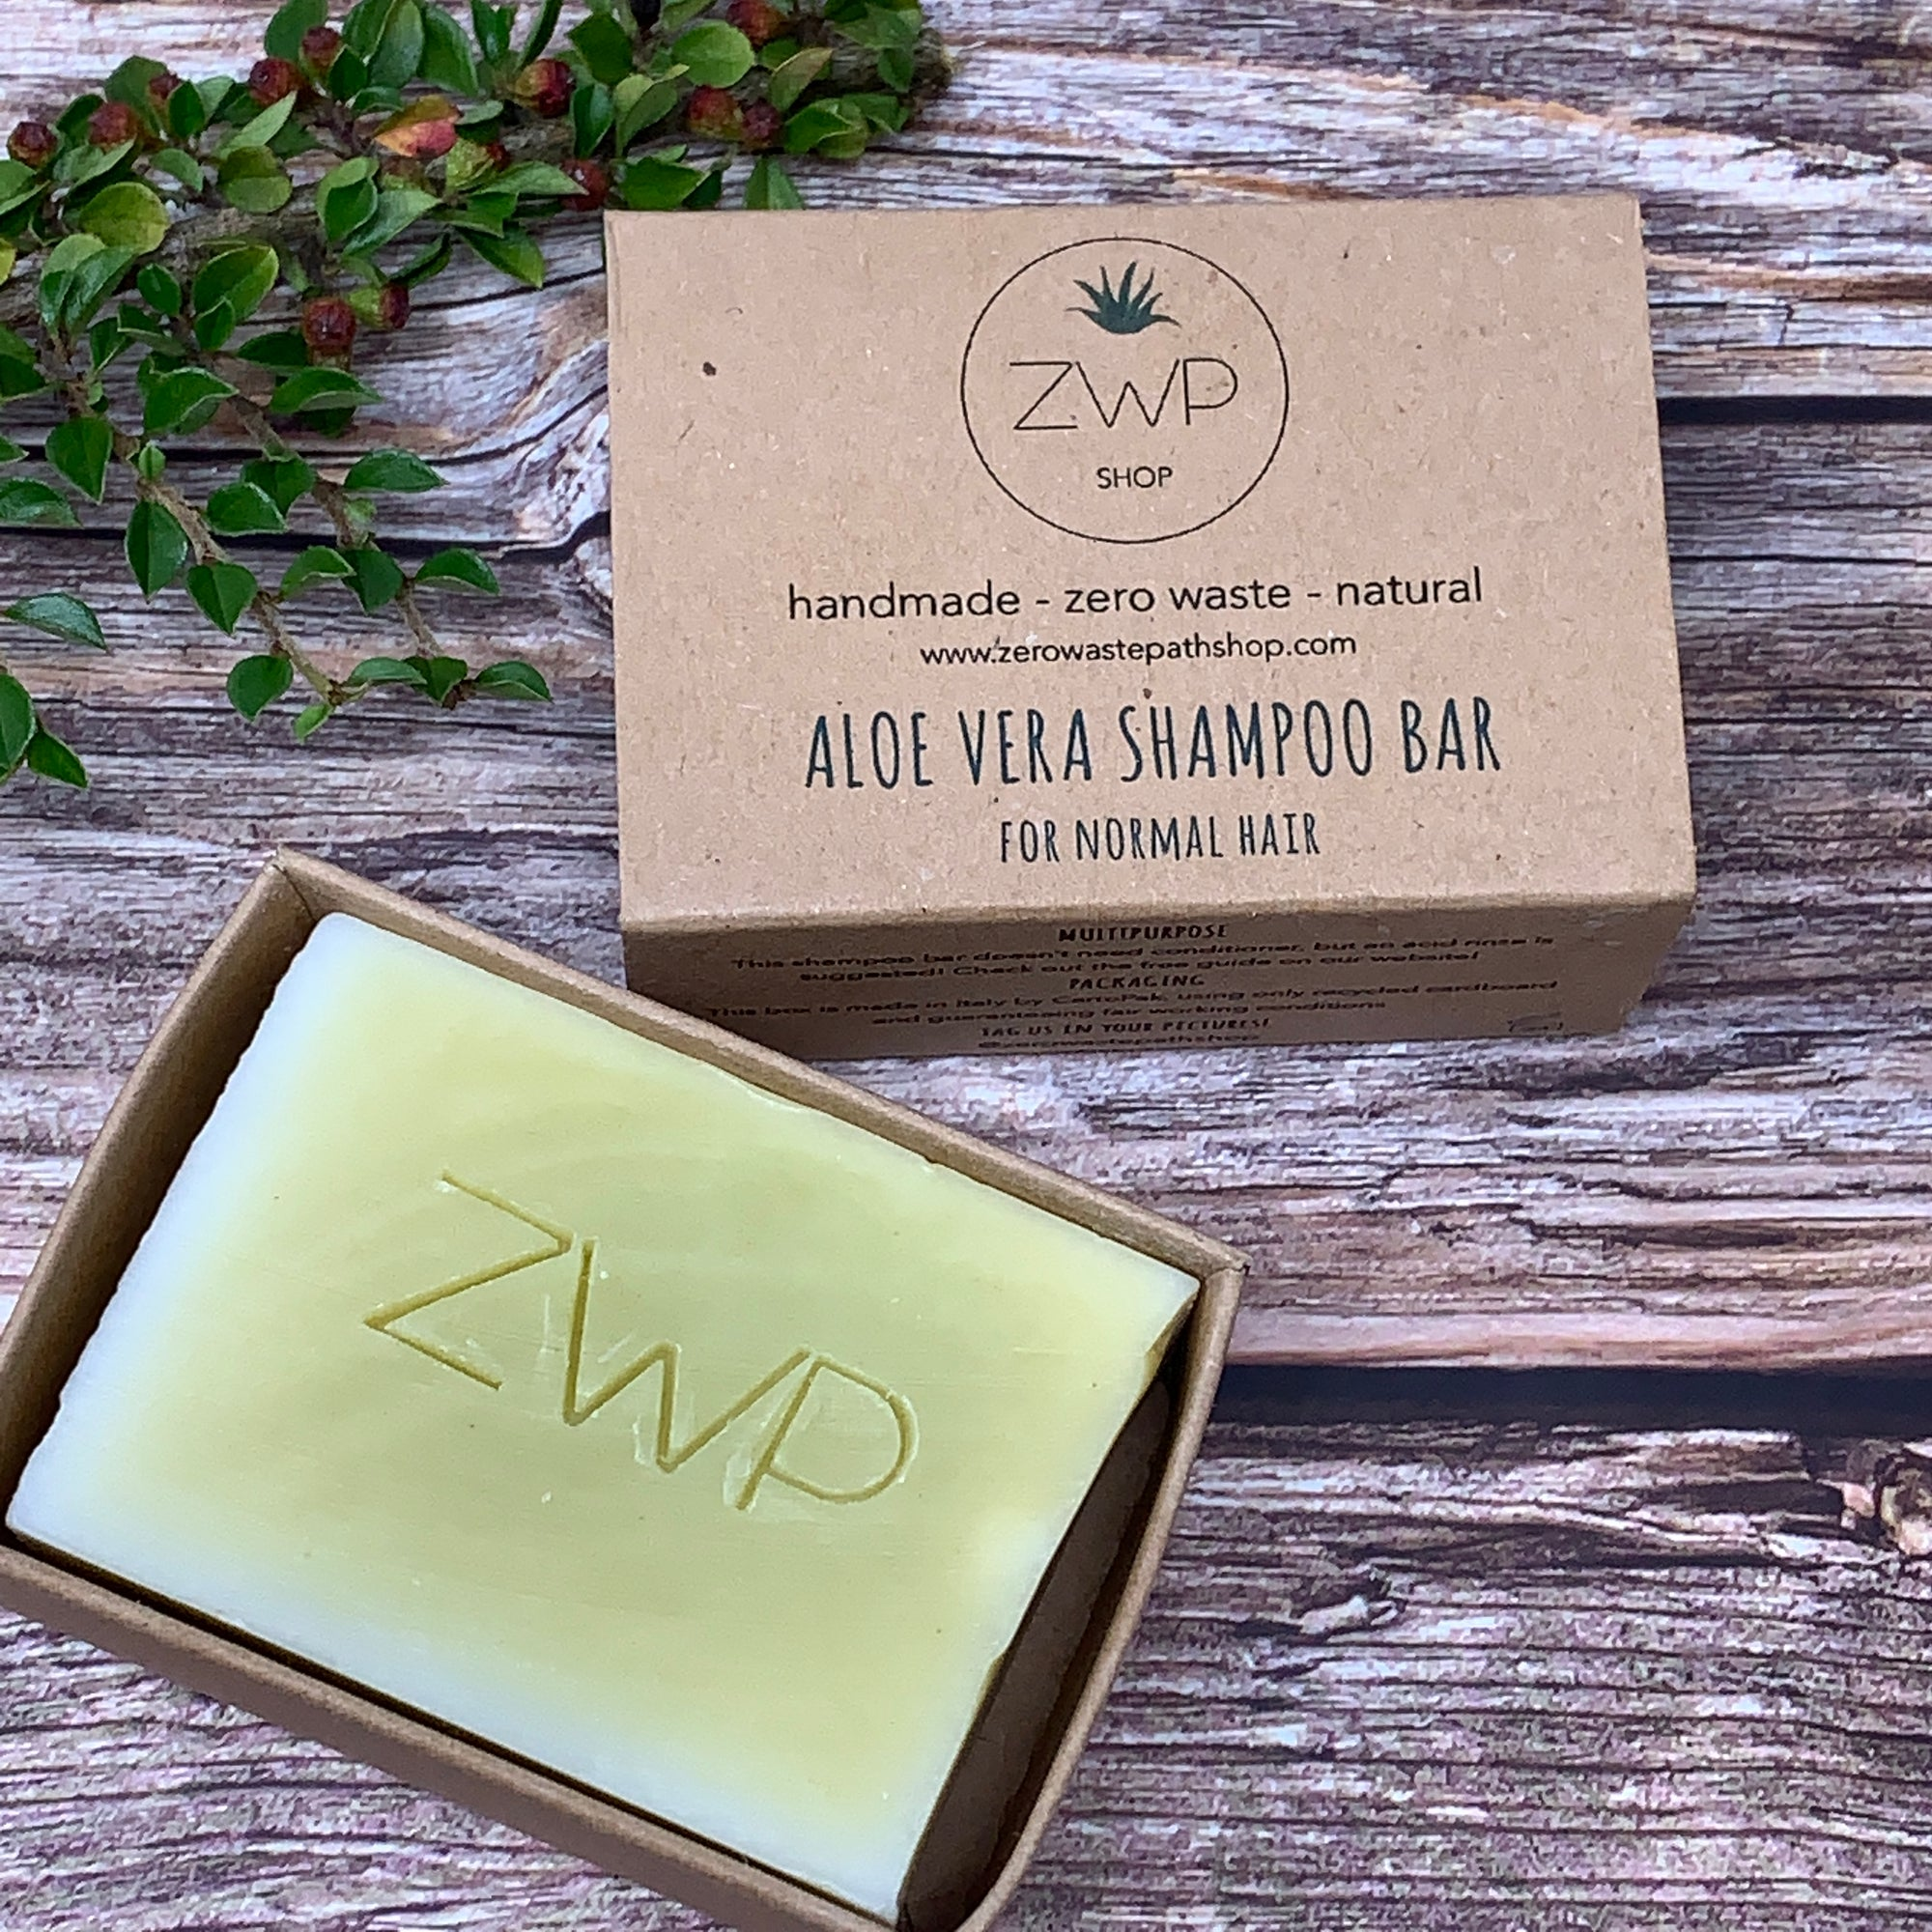 solid yellow shampoo bar with ZWP logo engraved  and brown box without plastic